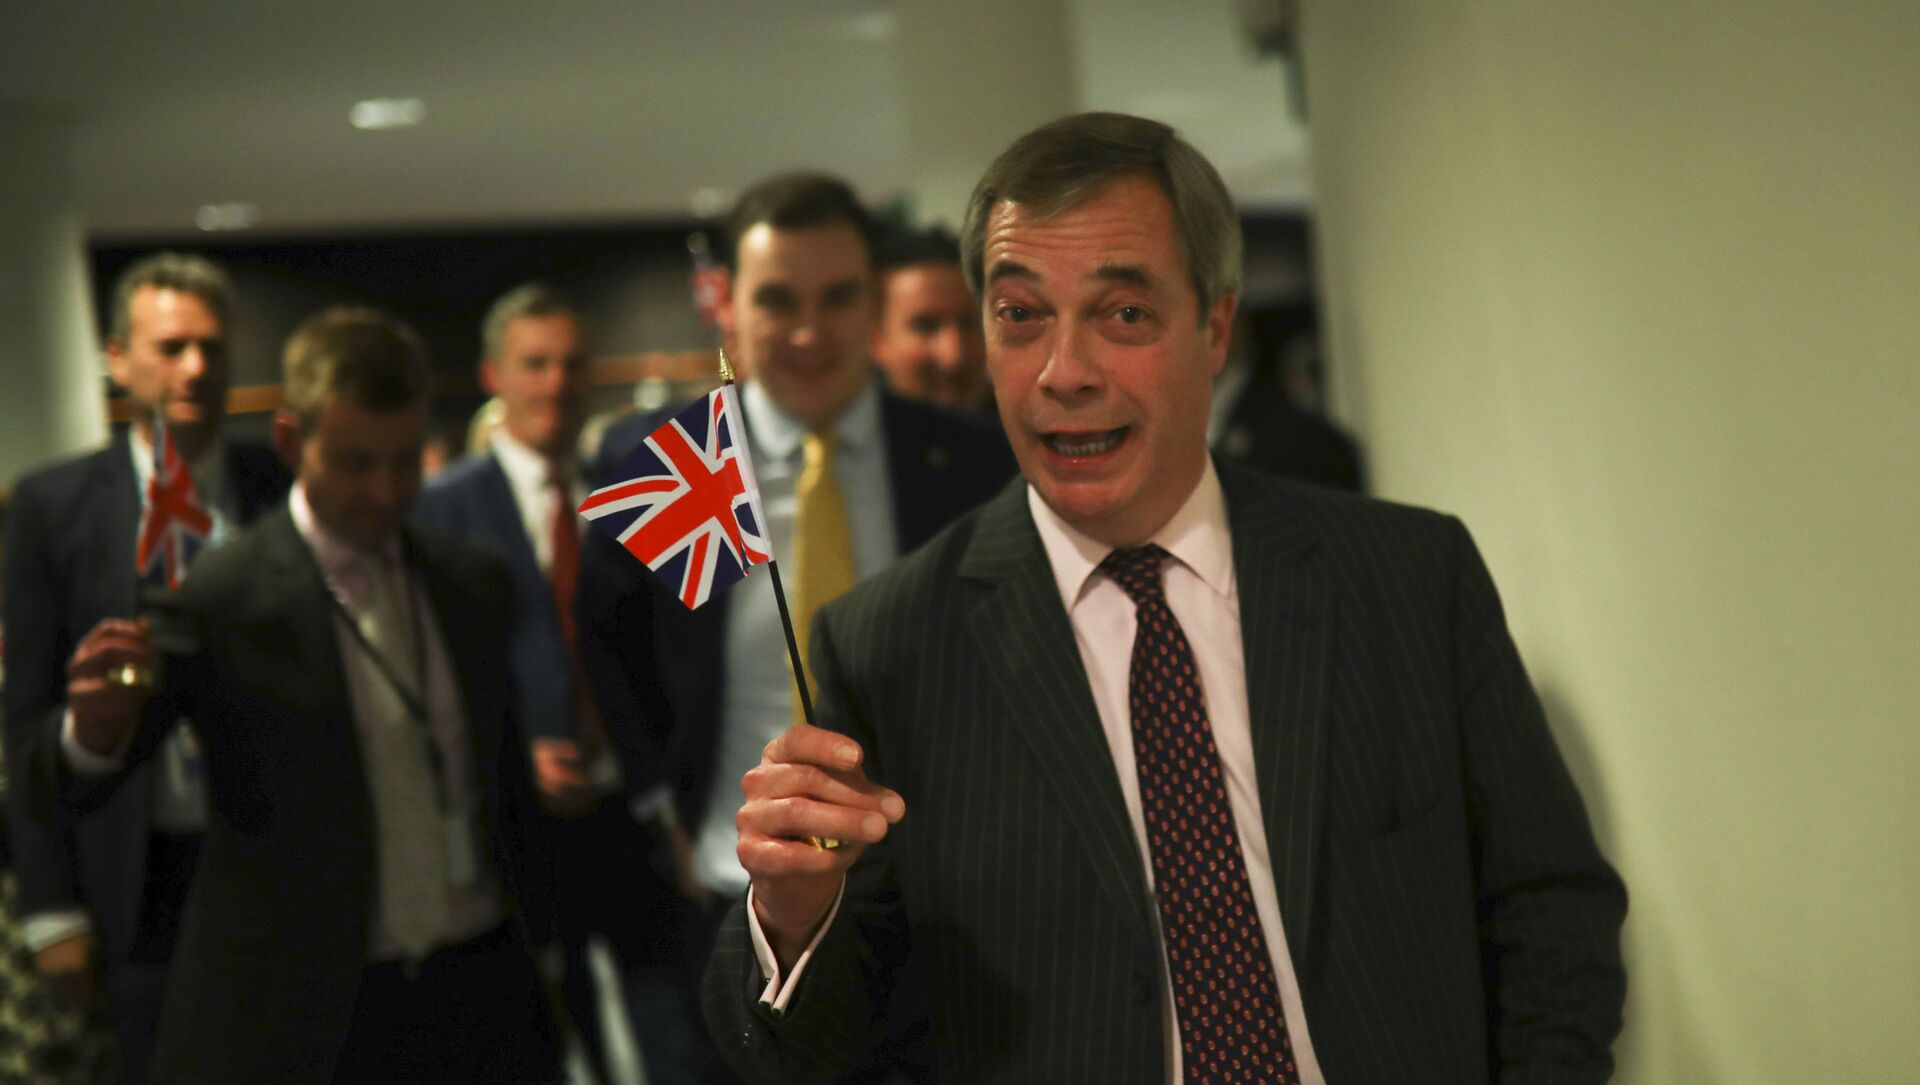 British European Parliament member Nigel Farage leaves the hemicycle after addressing European lawmakers during the plenary session at the European Parliament in Brussels, Wednesday, Jan. 29, 2020 - Sputnik International, 1920, 07.03.2021